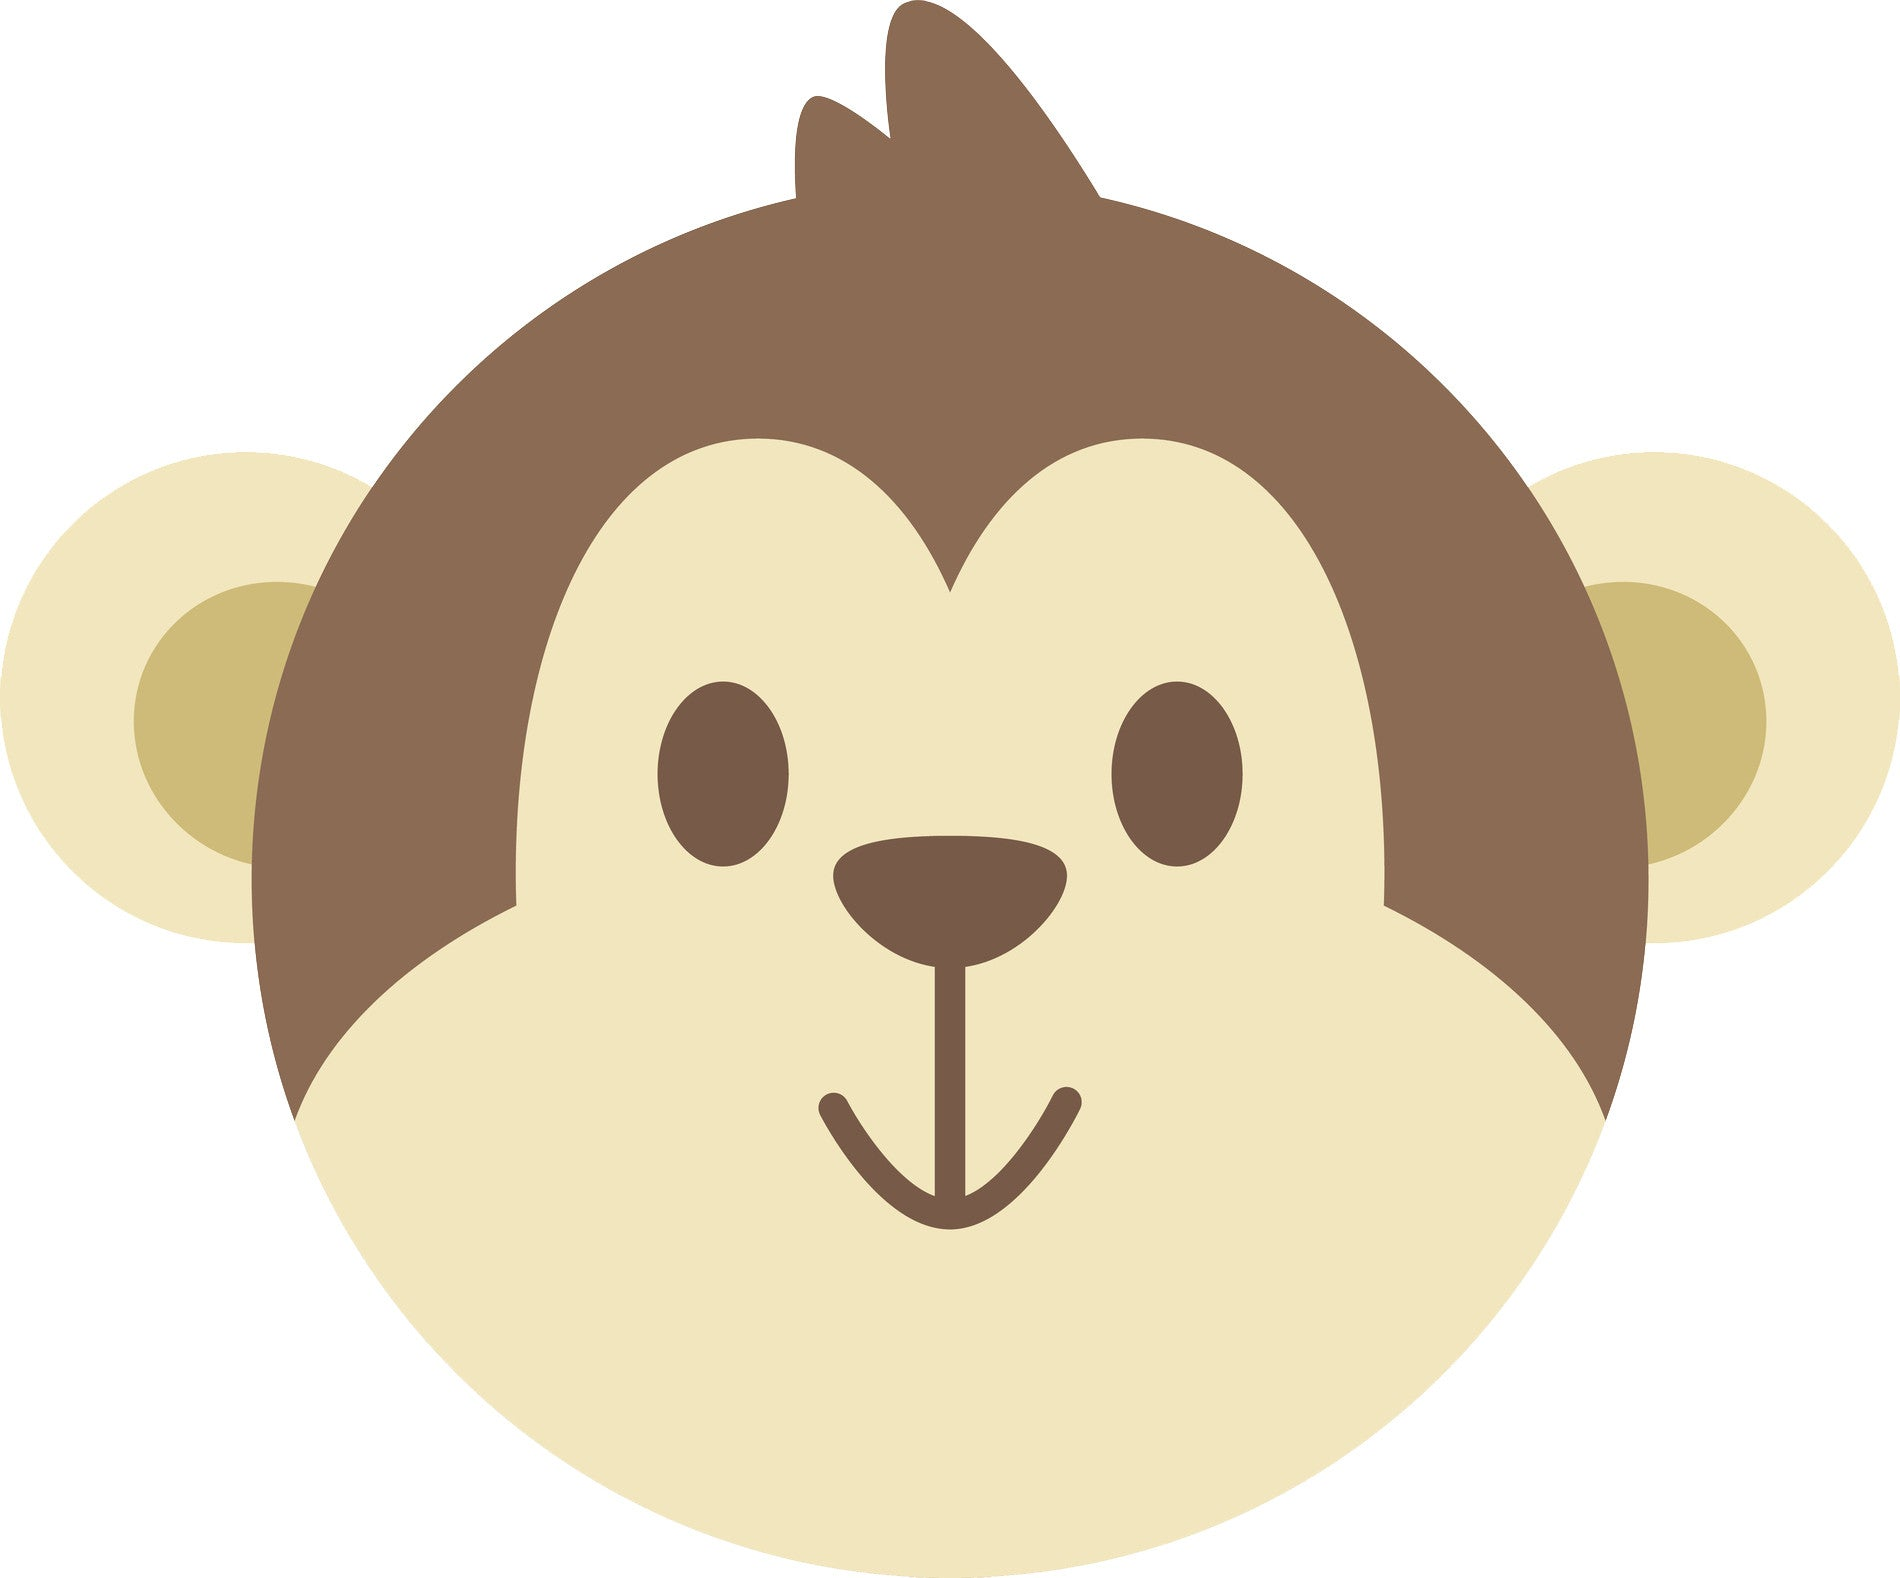 Cute Adorable Kawaii Animal Cartoon - Monkey Face Vinyl Decal Sticker